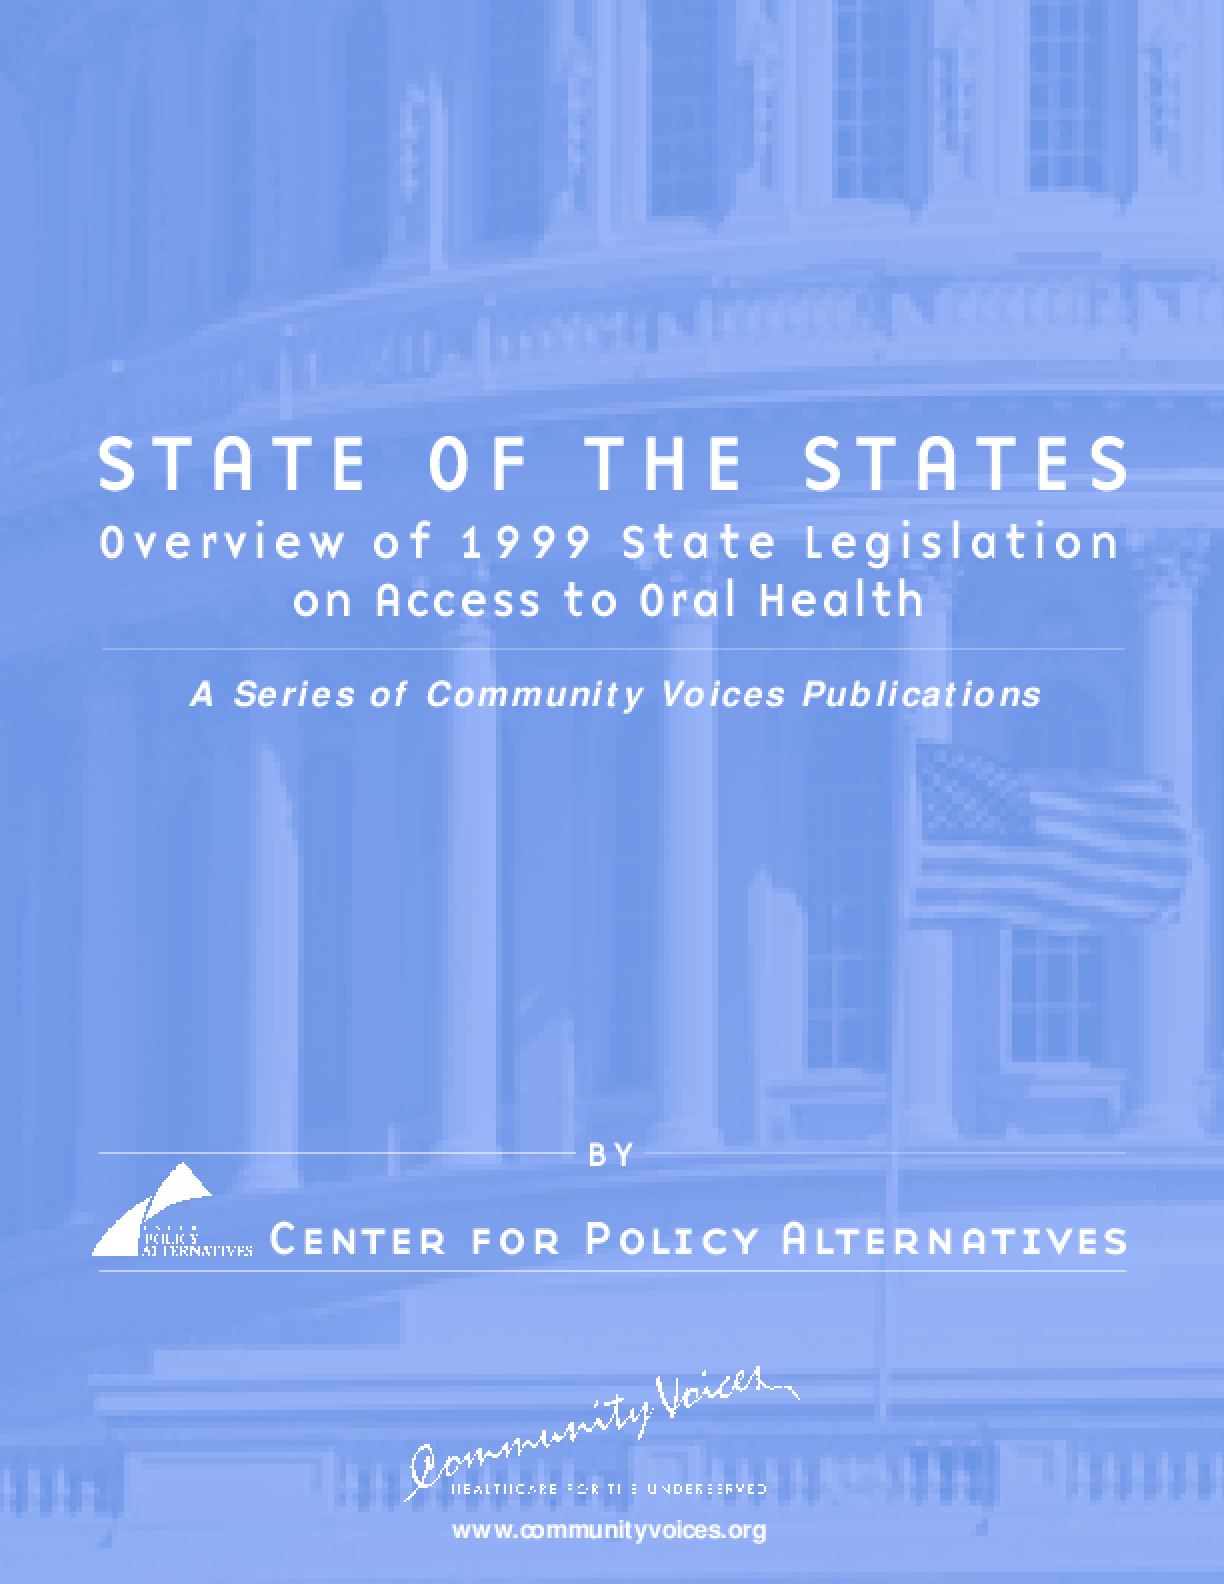 State of the States: Overview of 1999 State Legislation on Access to Oral Health